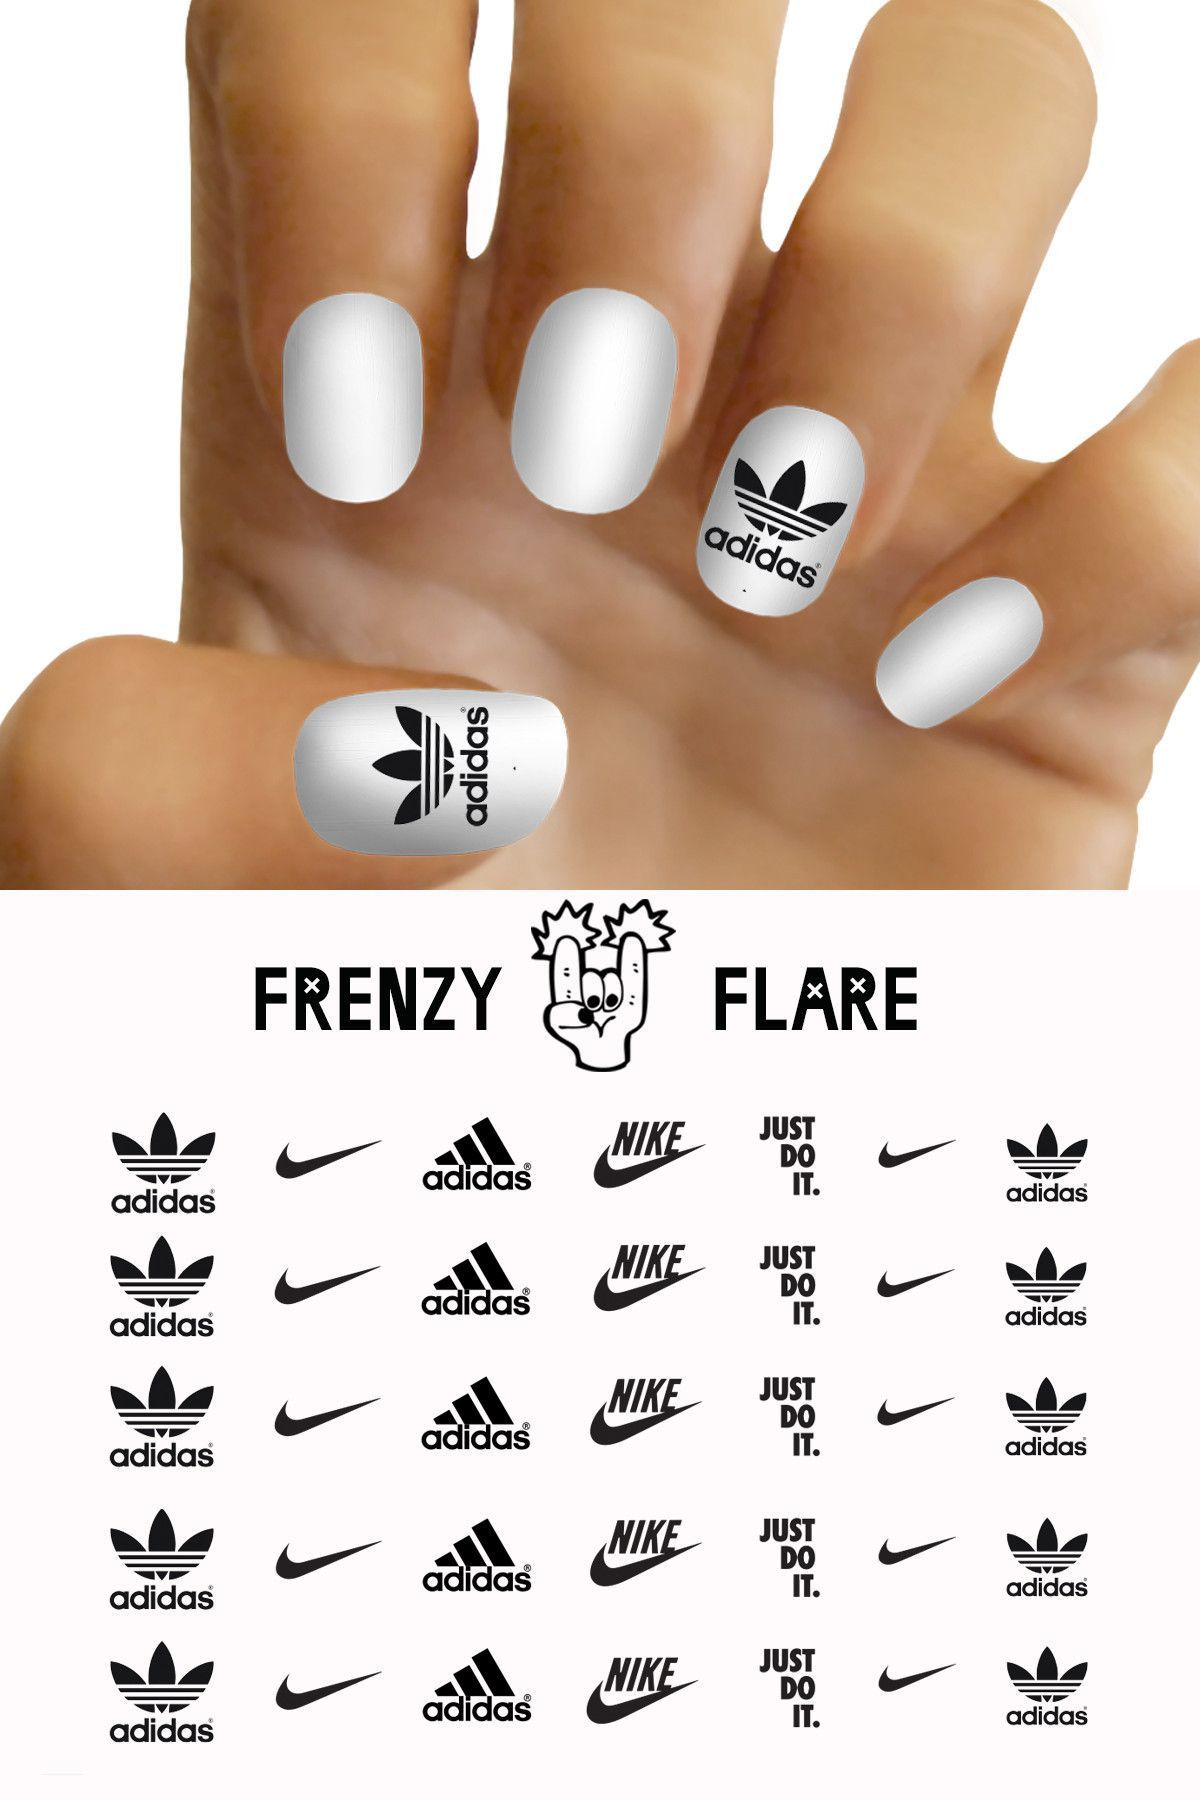 Adidas Nike Nail Decals For Diy Nail Art Custom Nail Decals Of Your